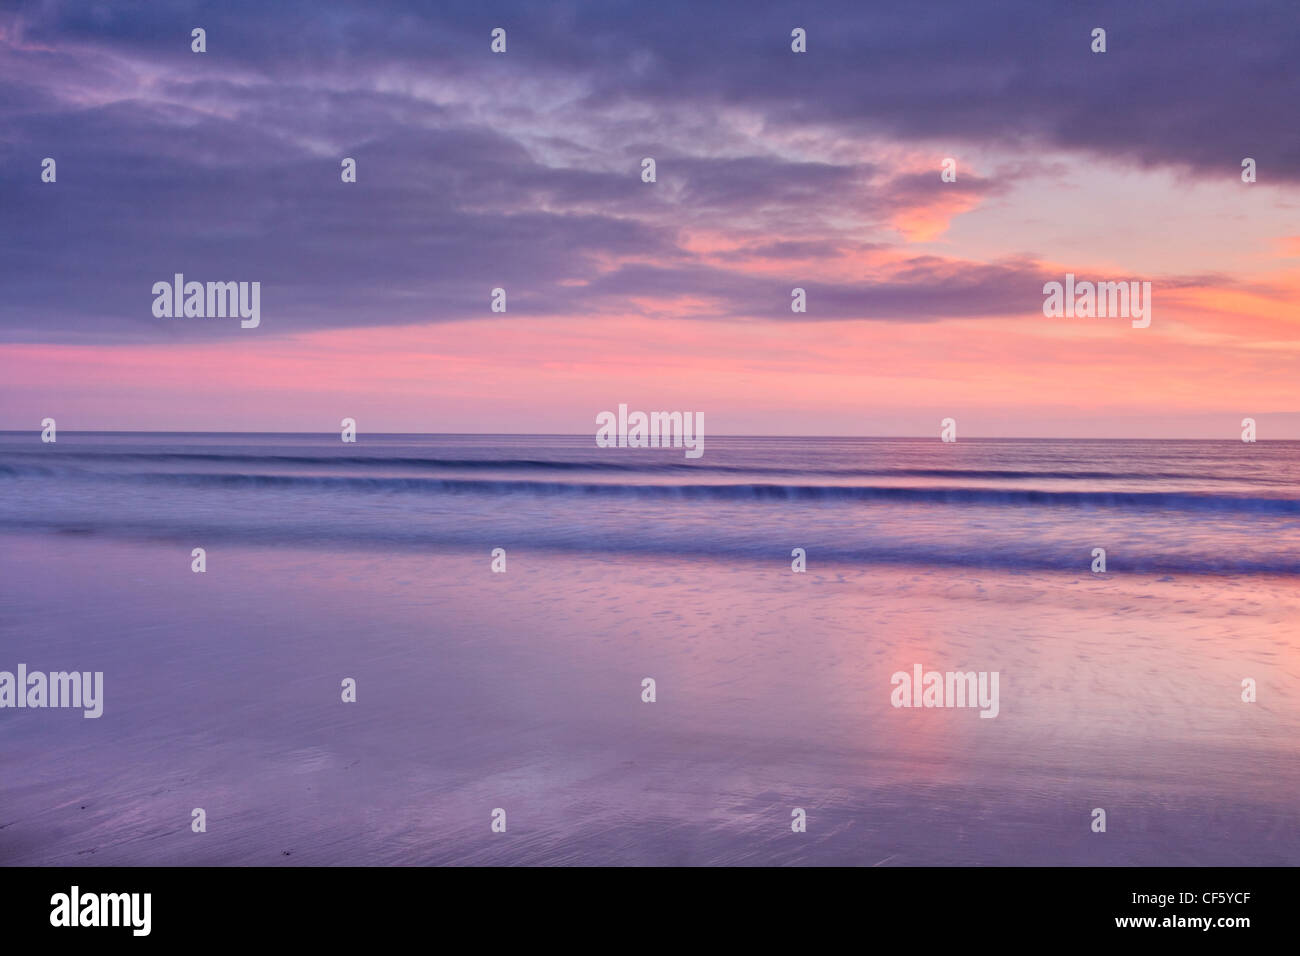 Waves rolling onto the beach below purple skies at sunset over Marloes Sands. - Stock Image